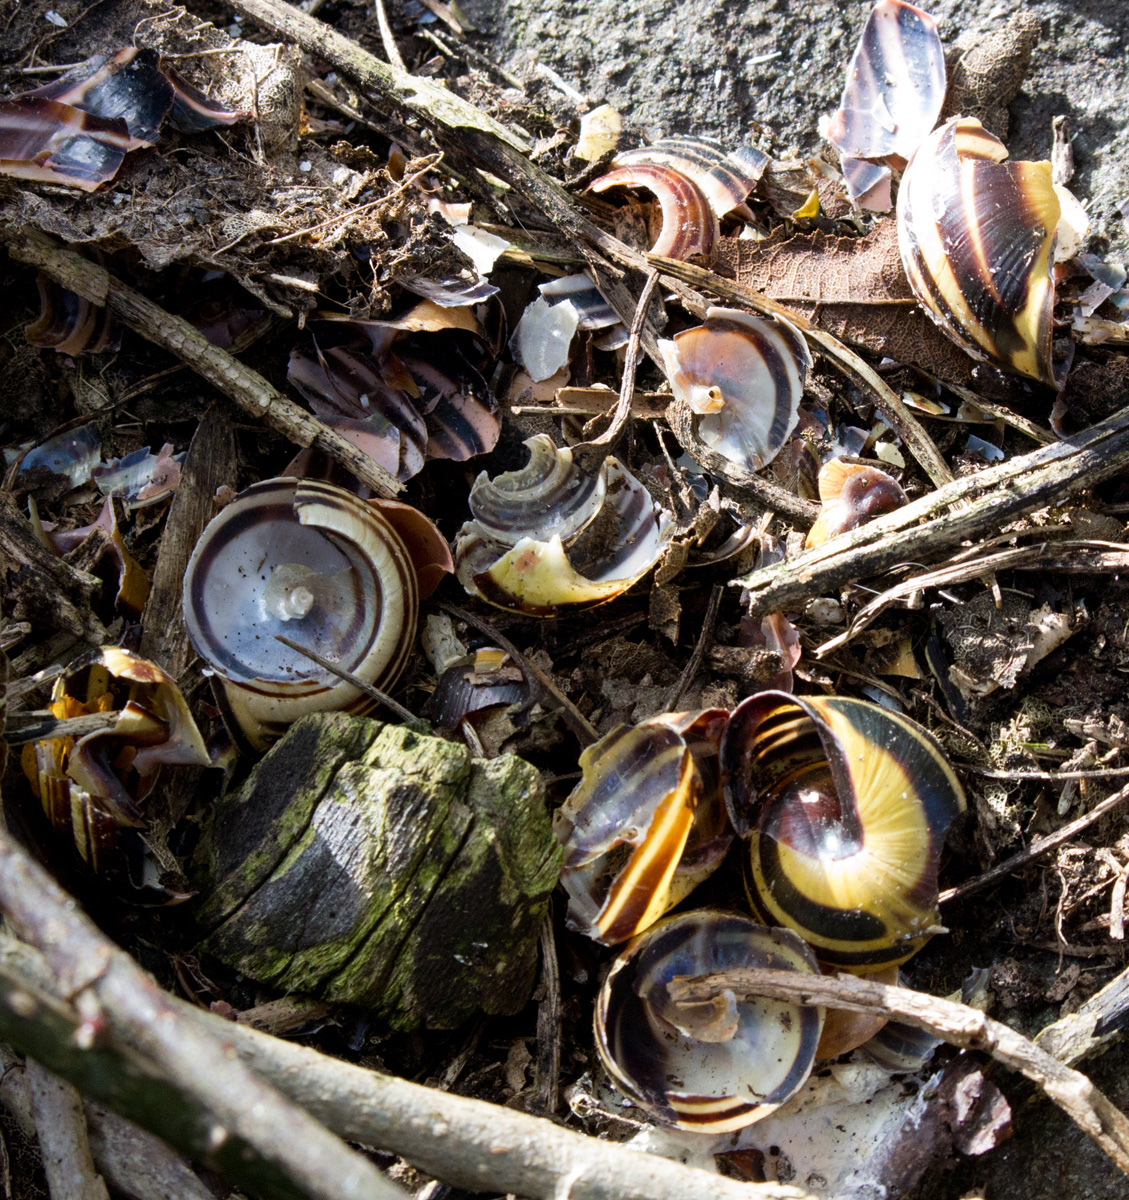 The broken snail shells